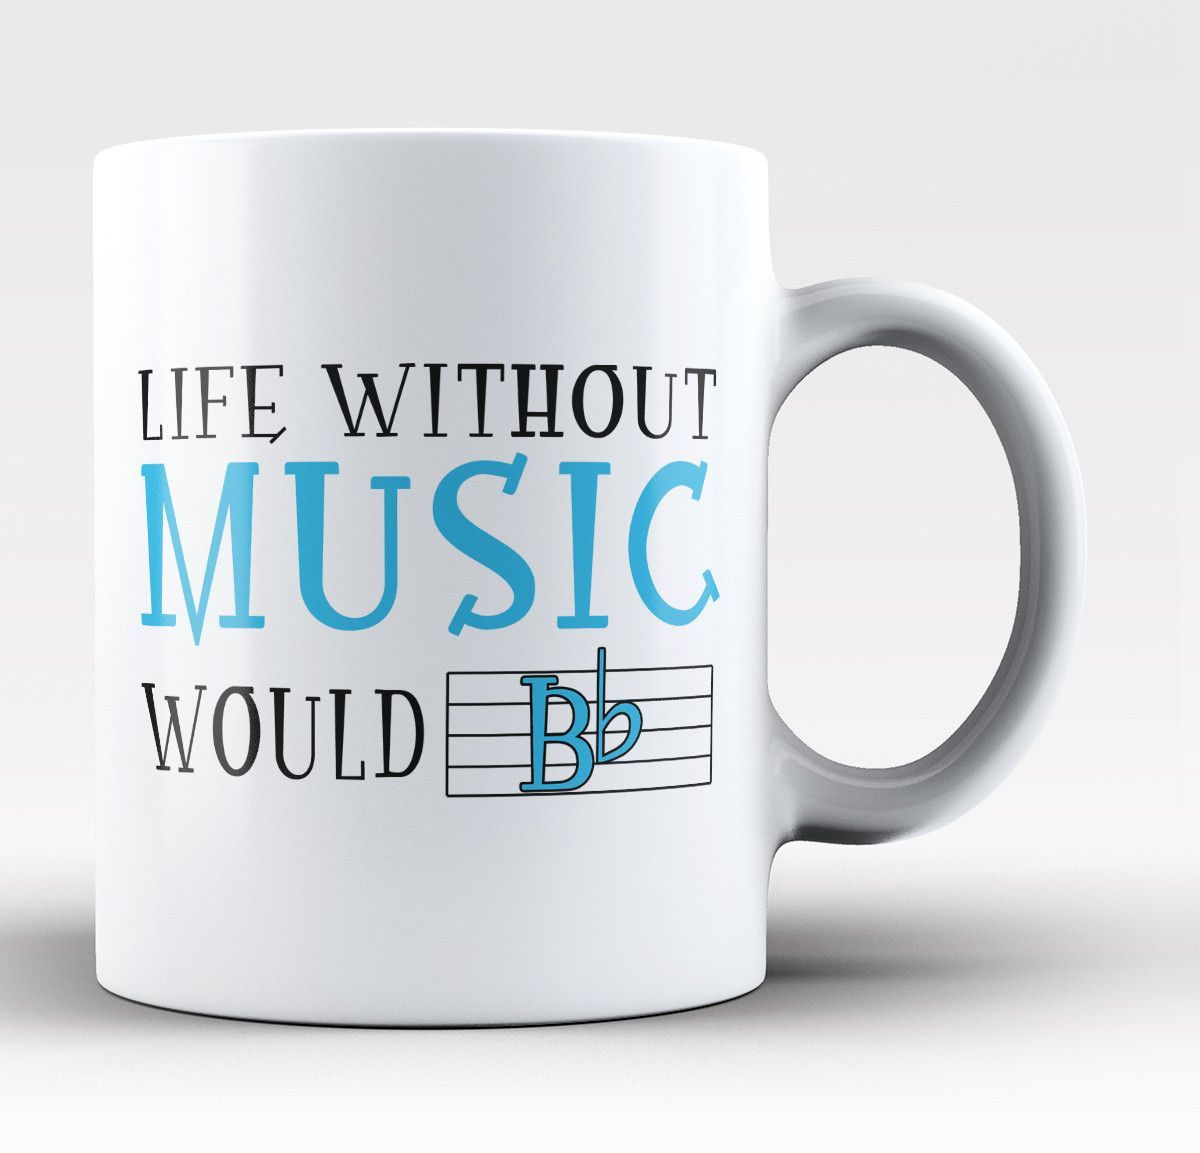 Life without music would B FLAT The perfect coffee mug for anyone who can't live without music. Order yours today! Take advantage of our Low Flat Rate Shipping - order 2 or more and save. - Printed an